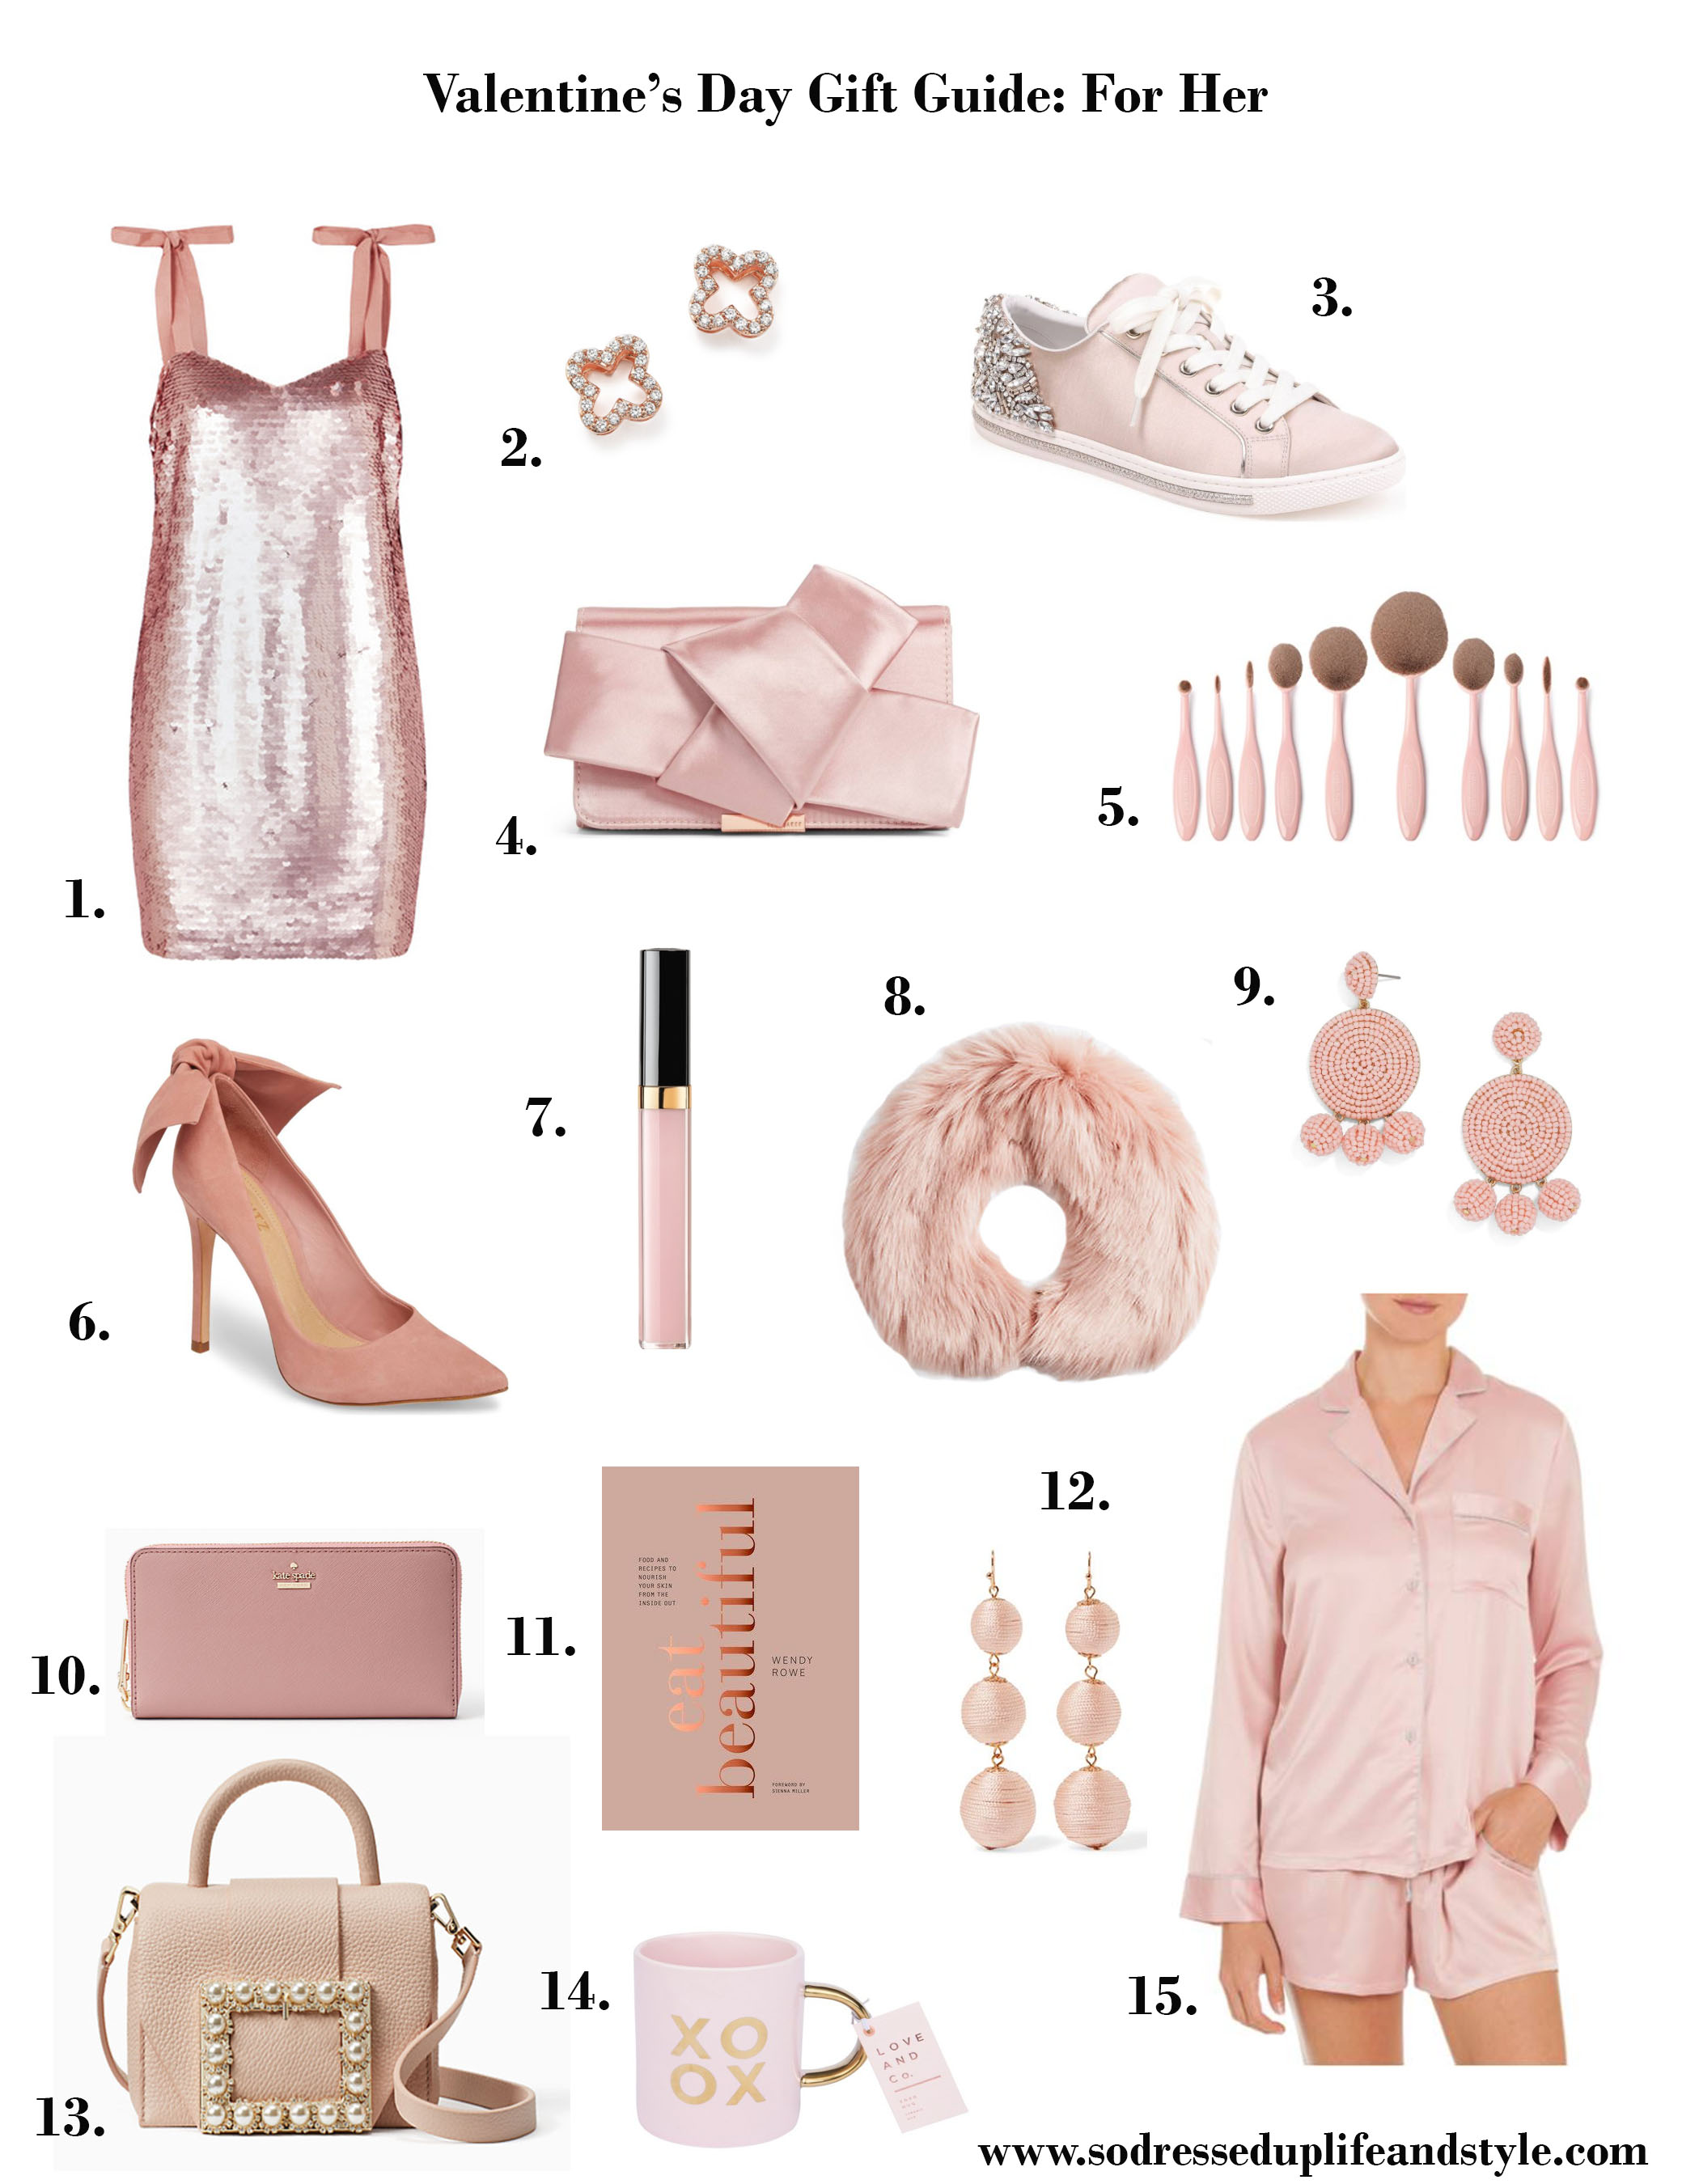 Valentines Day Gift Guide Her.jpg